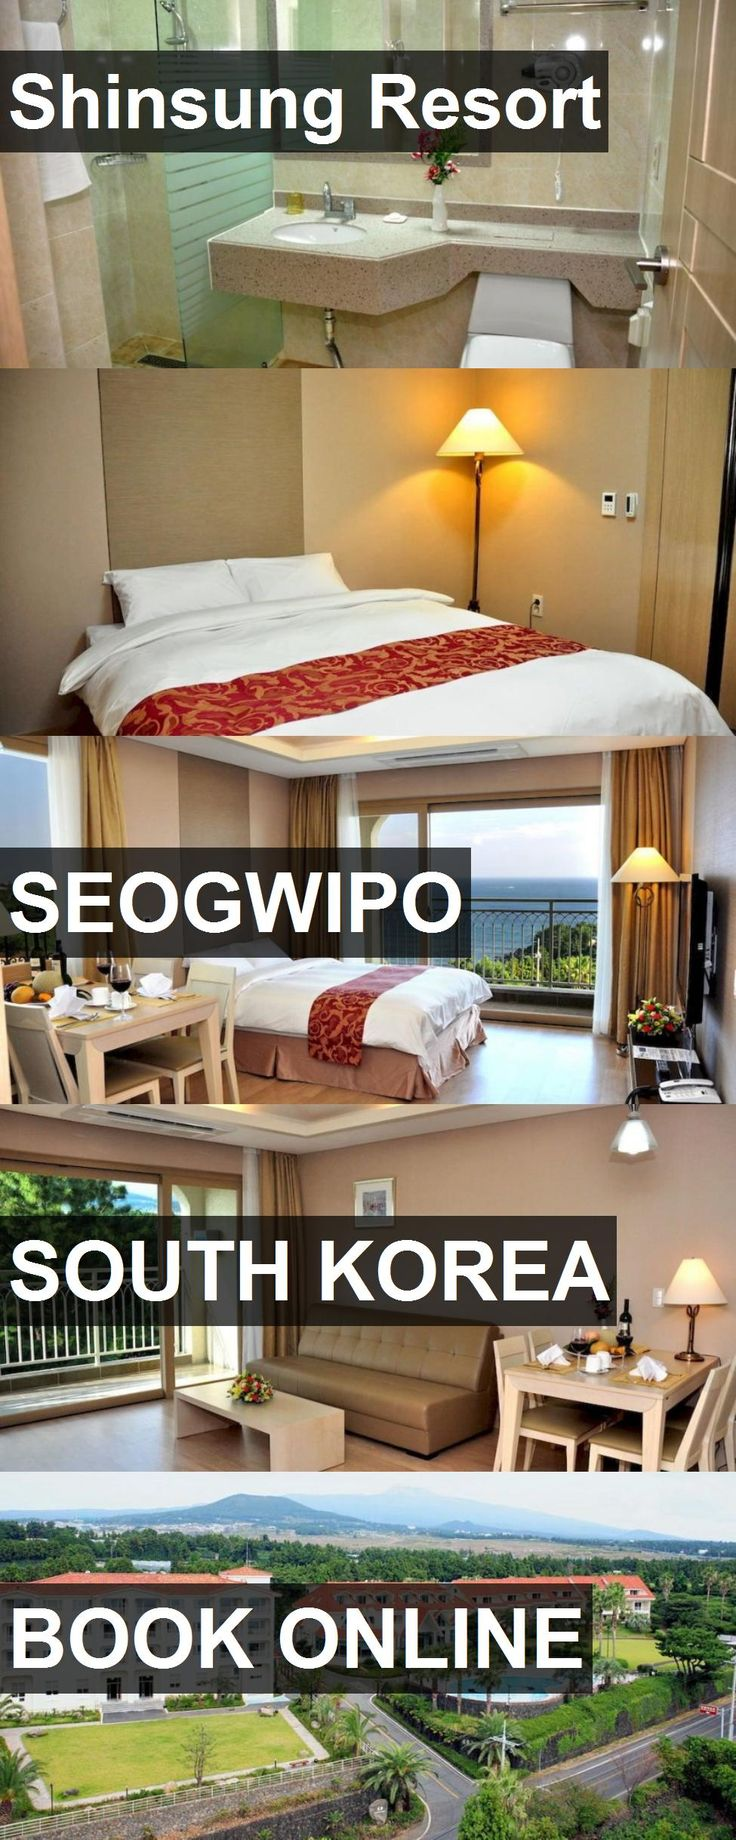 Hotel Shinsung Resort in Seogwipo, South Korea. For more information, photos, reviews and best prices please follow the link. #SouthKorea #Seogwipo #travel #vacation #hotel